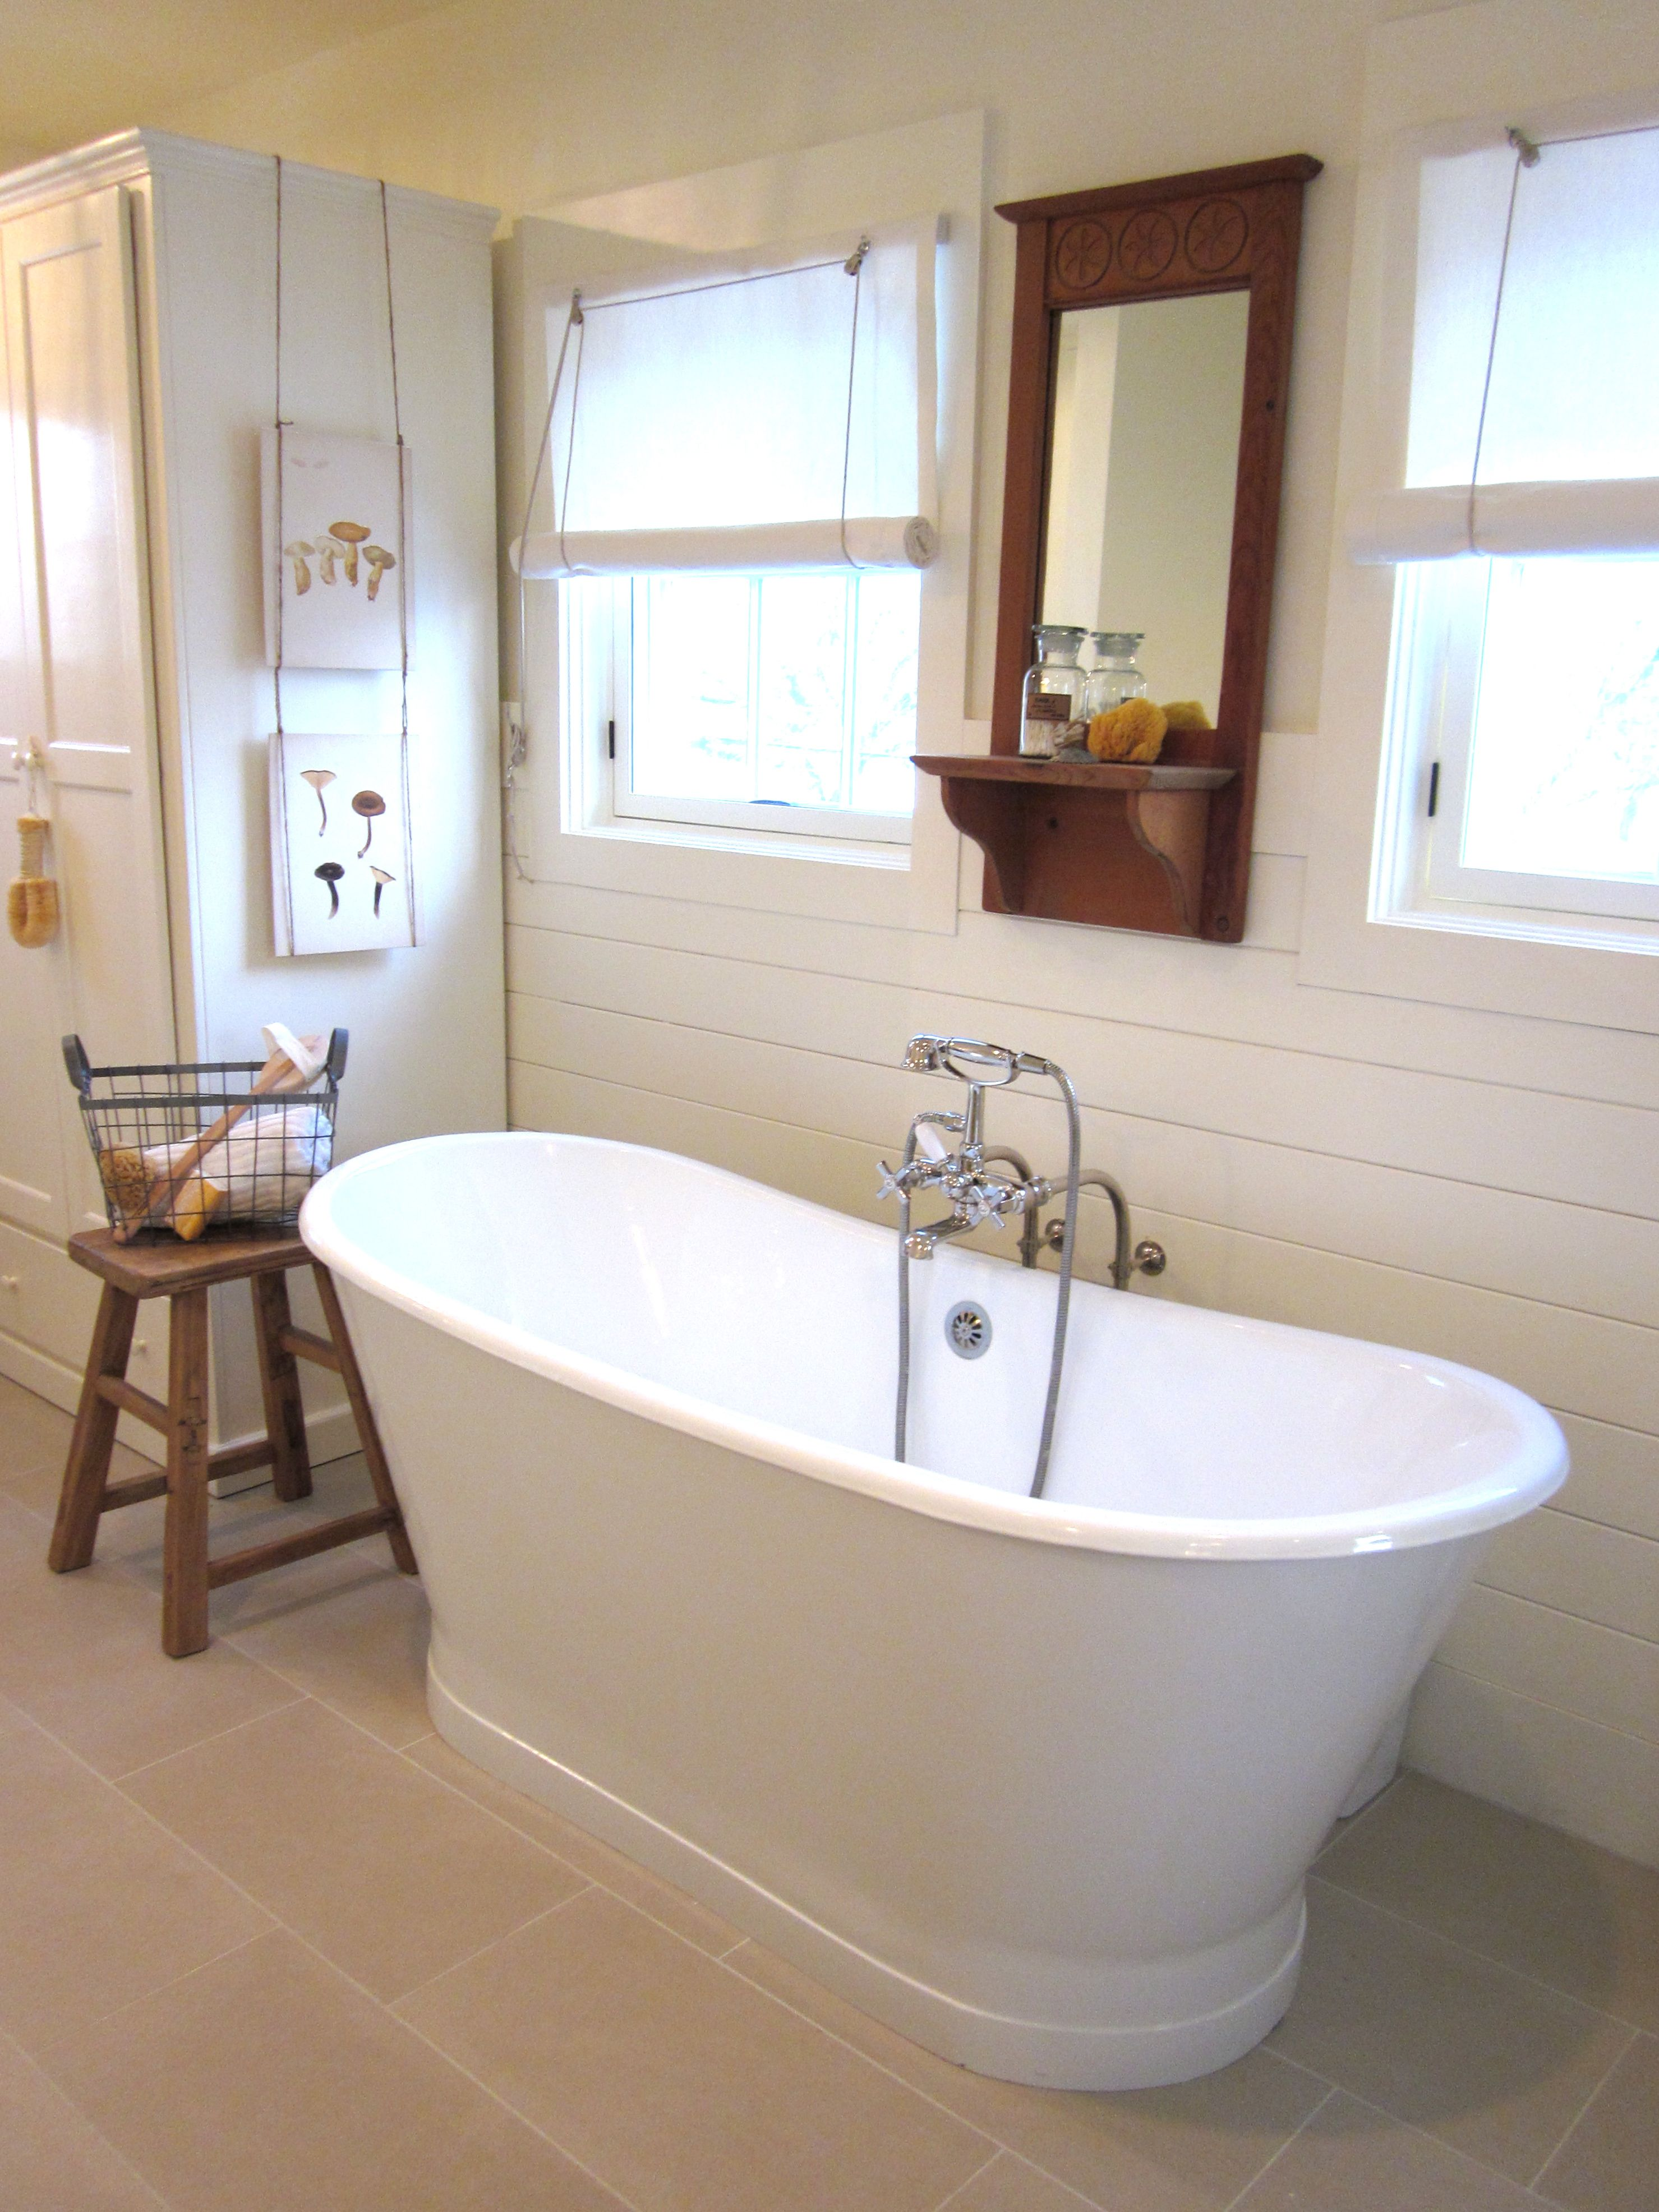 tiny bathroom with clawfoot tub - home decorating